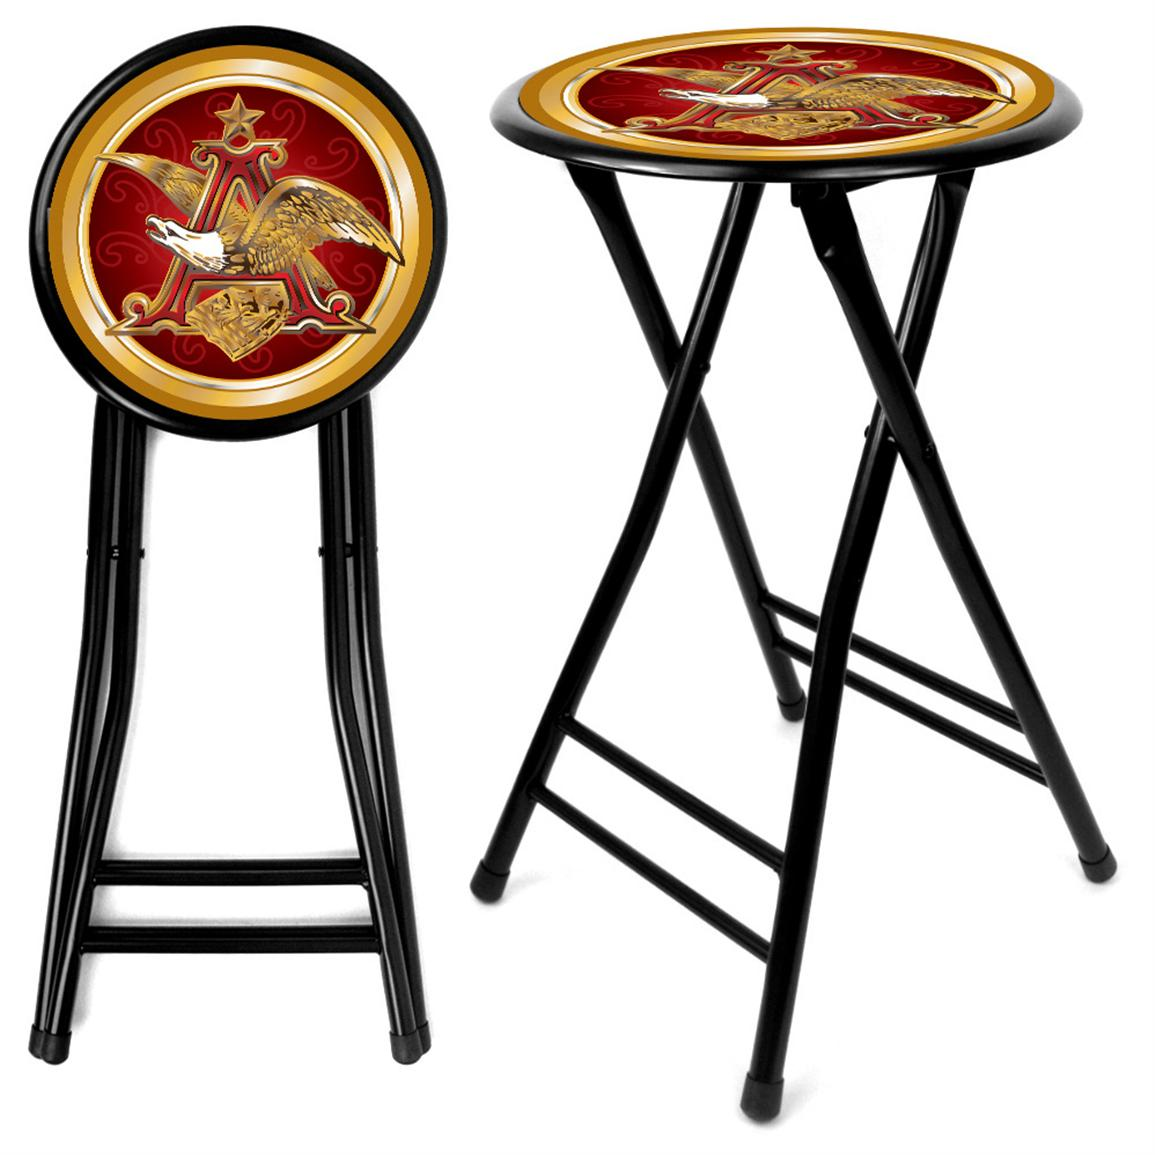 2-Pk. of Anheuser Busch® 24 inch Cushioned Stools